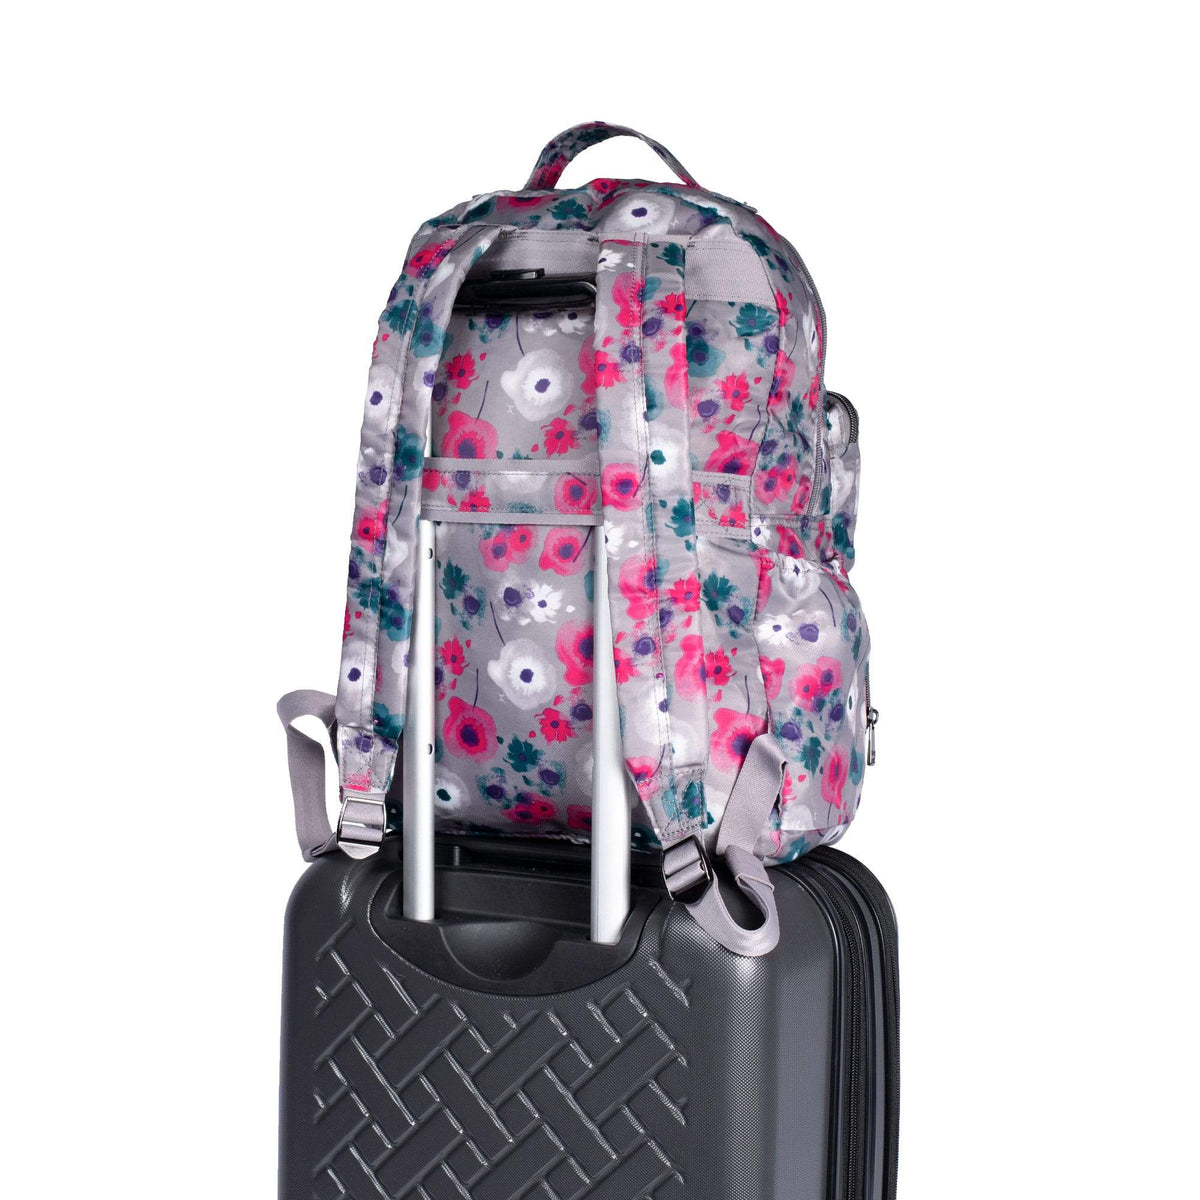 Puddle Jumper Packable Backpack